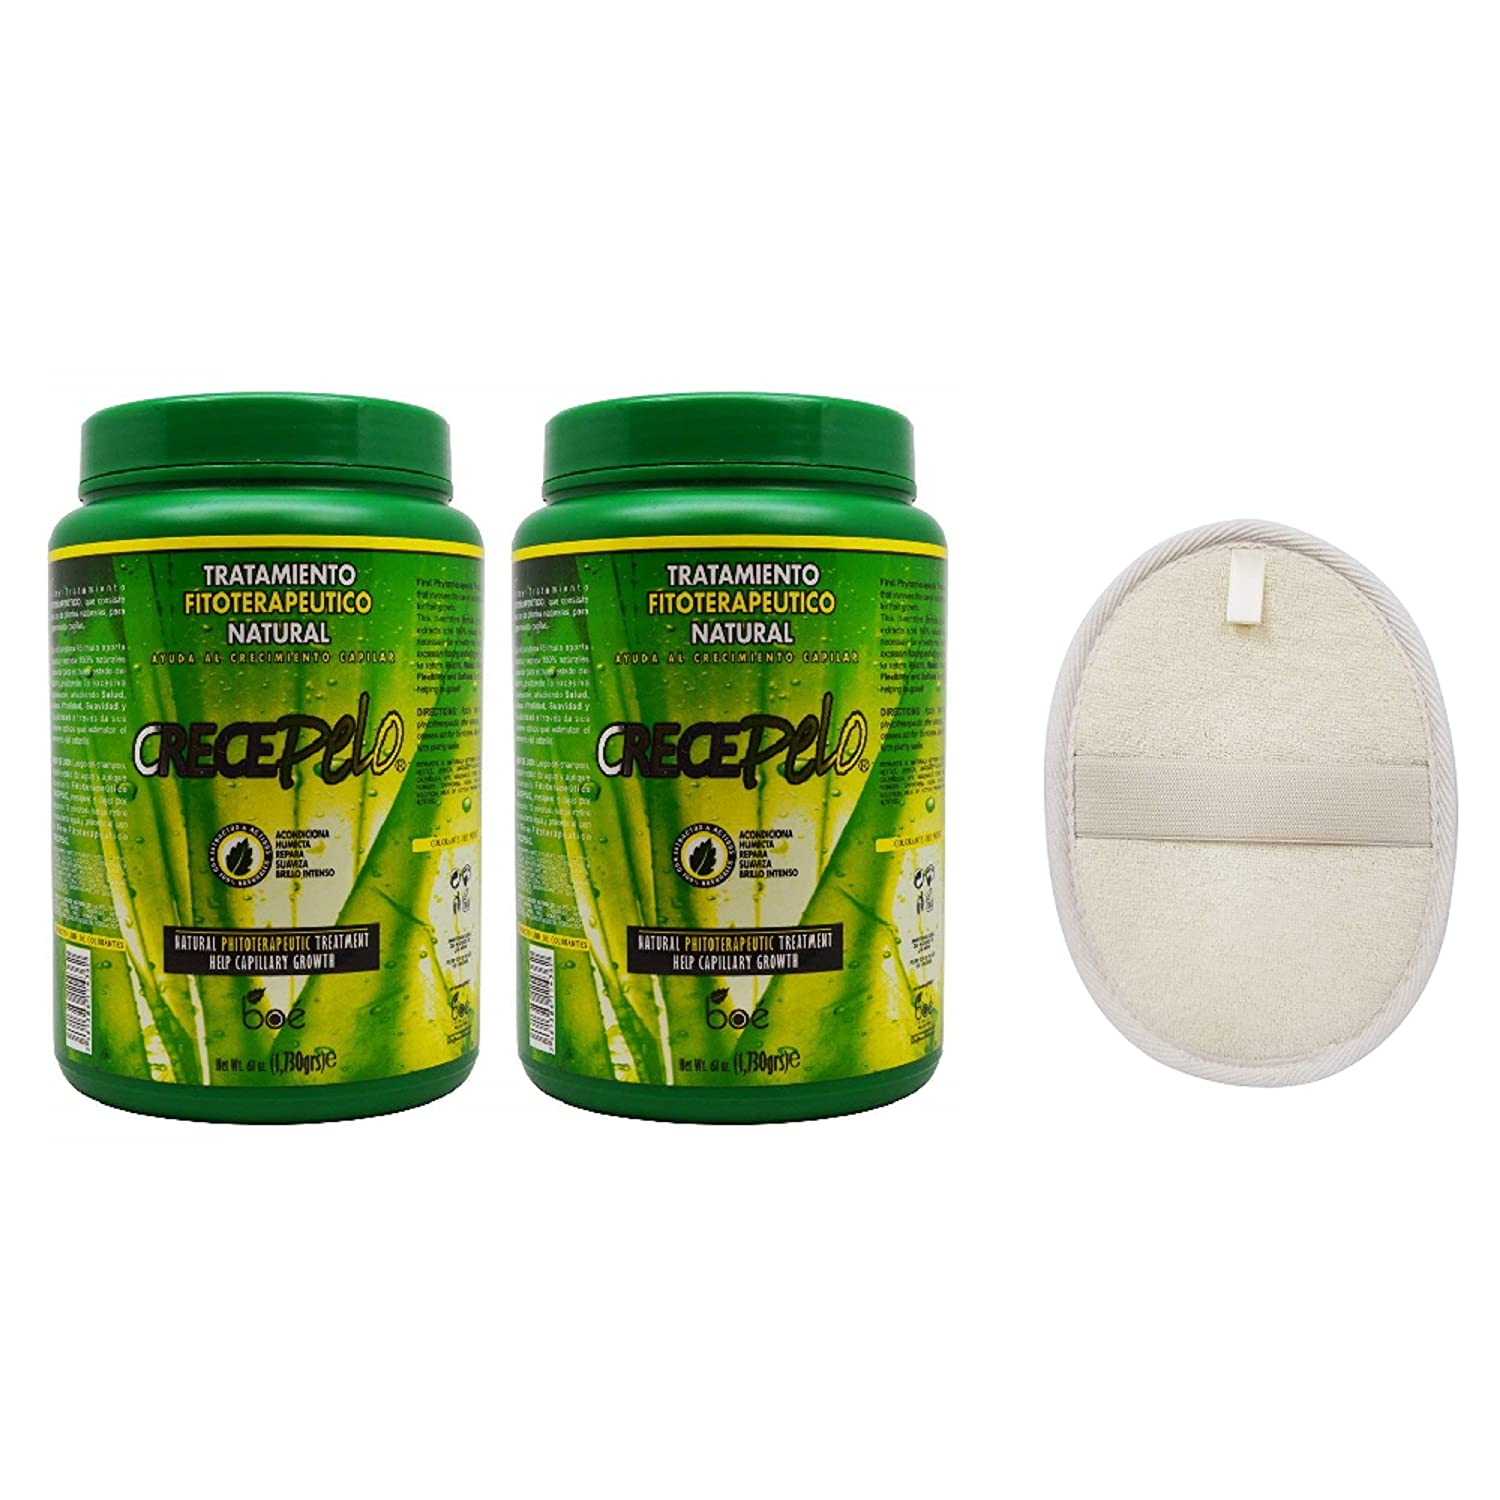 Crecepelo Tratamiento Fitioterapeutico Natural(Phitoterapeutic Treatment) 61oz (2PCS)